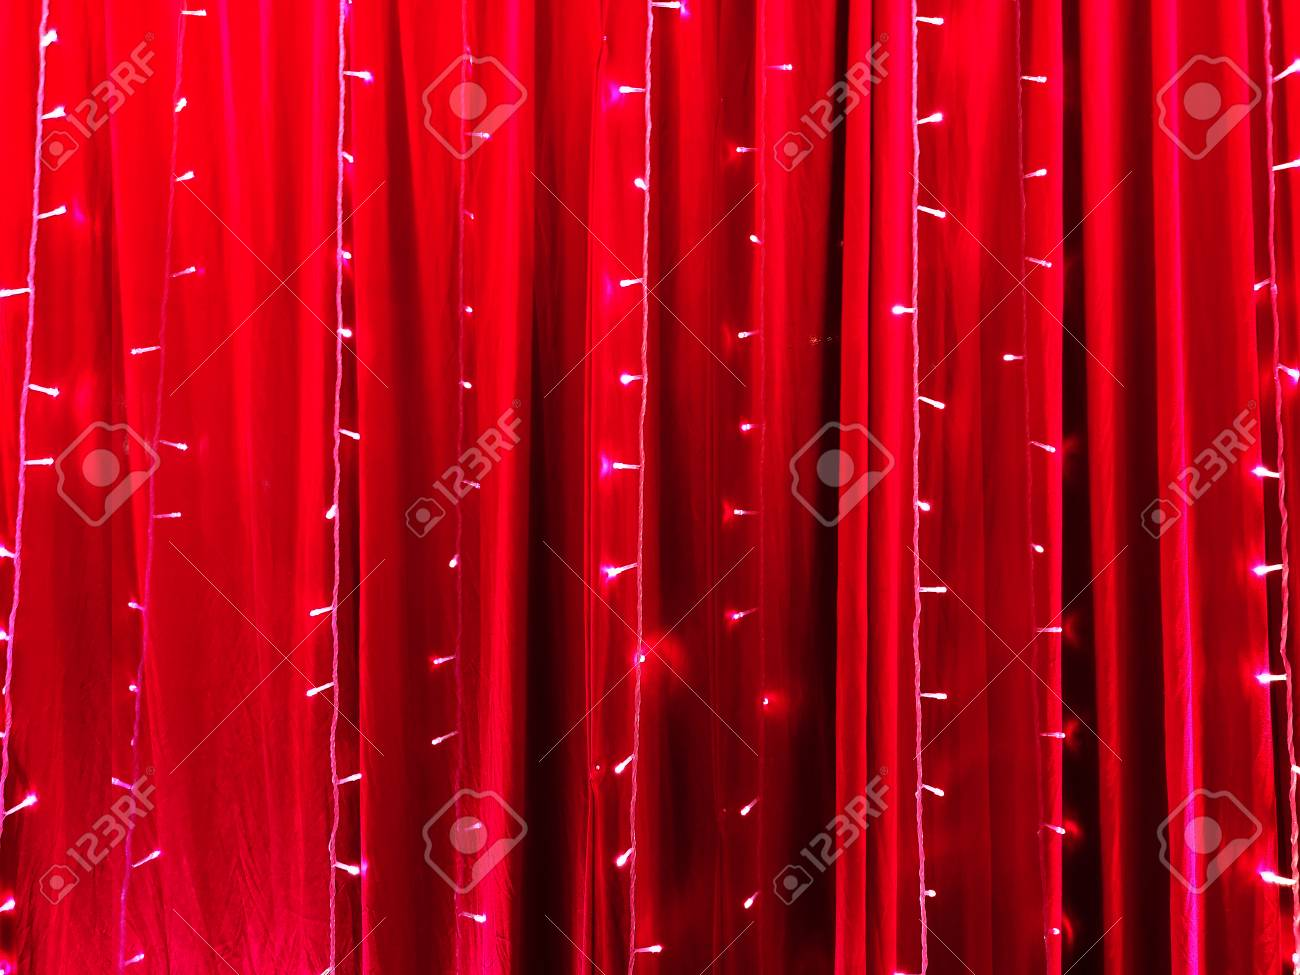 LED lights on red certain fabric backdrop as abstract background. - 126568667